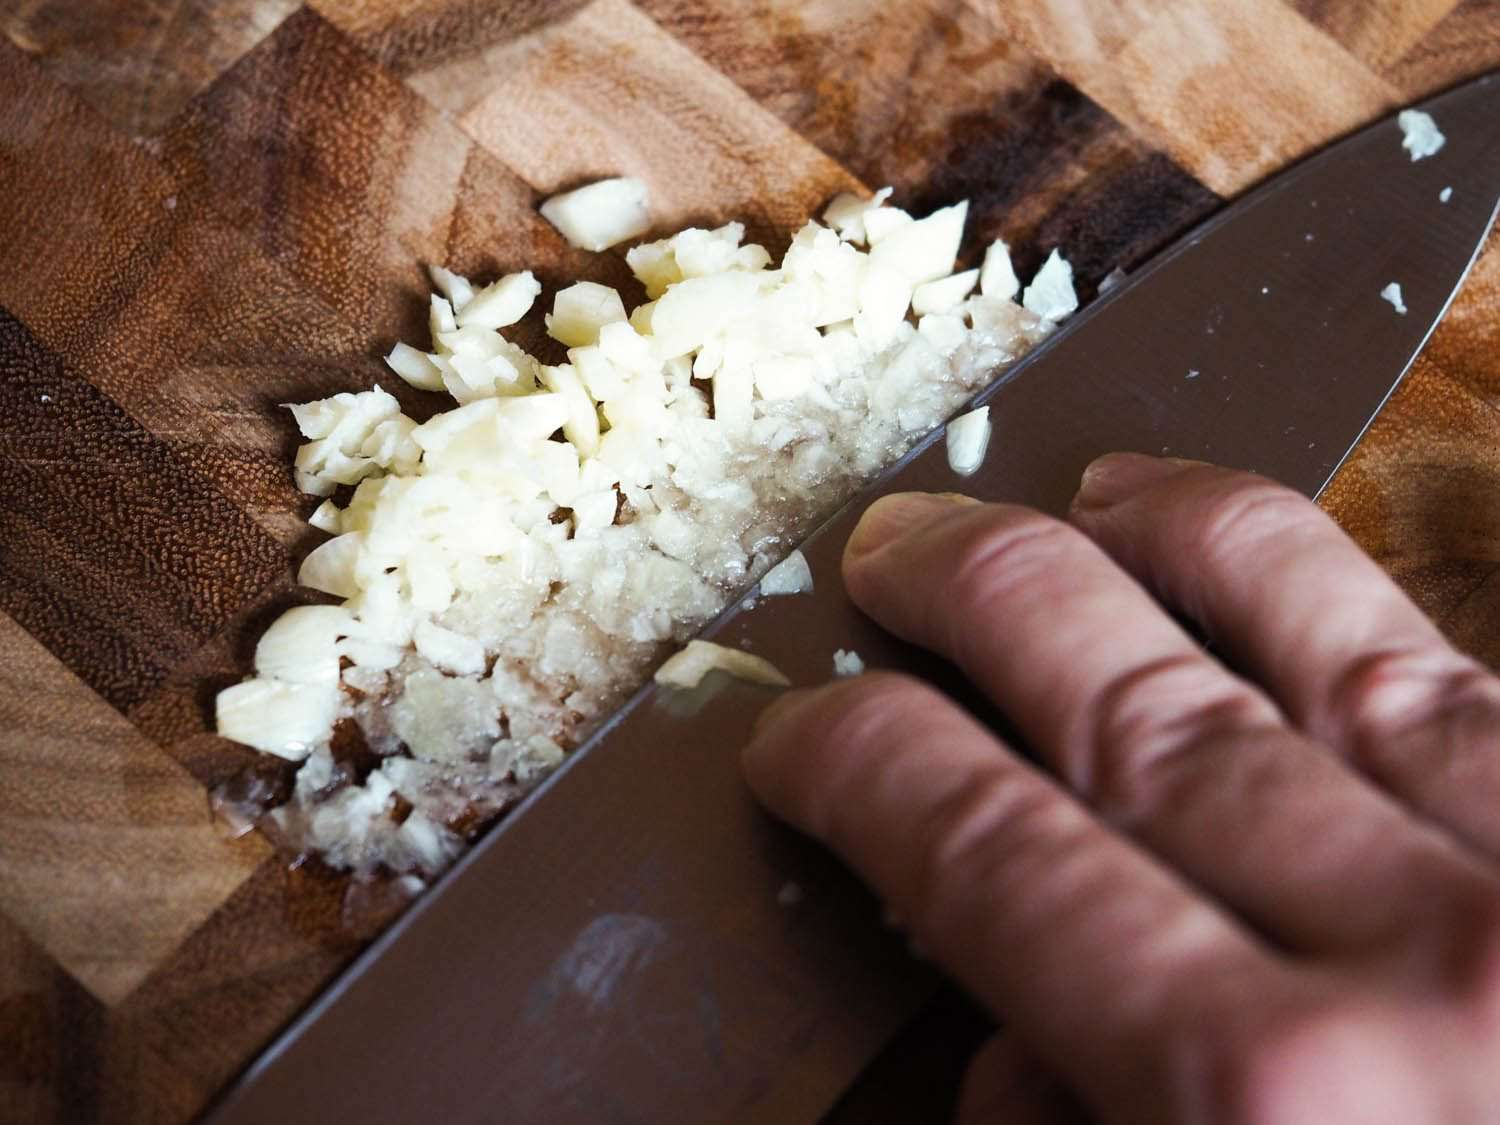 Crushing garlic with the side of a knife.